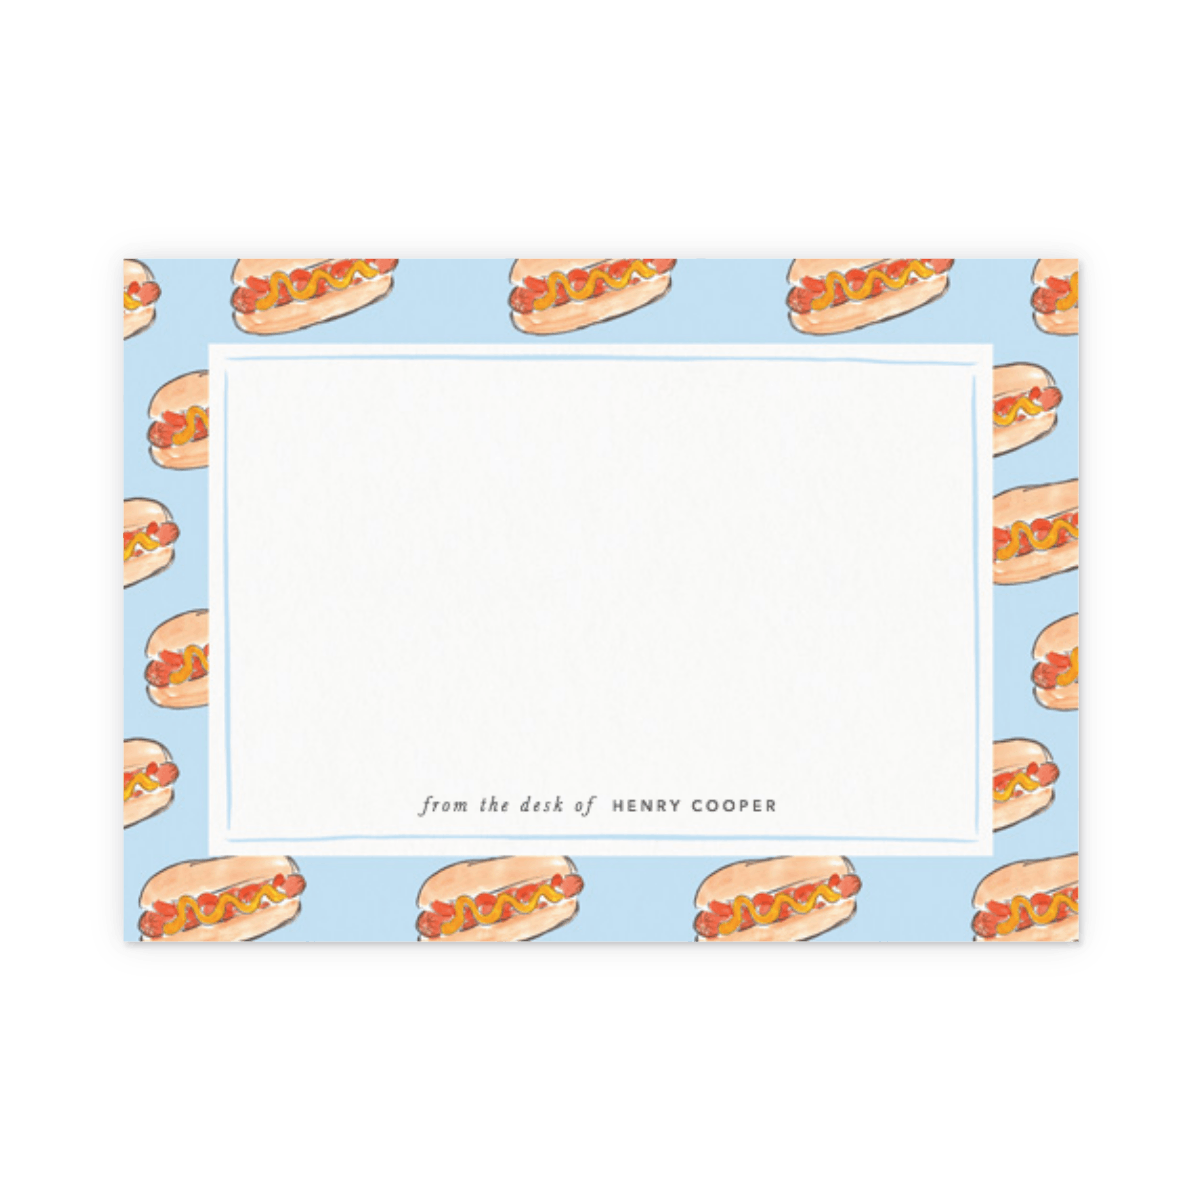 Https%3a%2f%2fwww.papier.com%2fproduct image%2f47333%2f10%2fhotdogs border 11609 front 1537981167.png?ixlib=rb 1.1